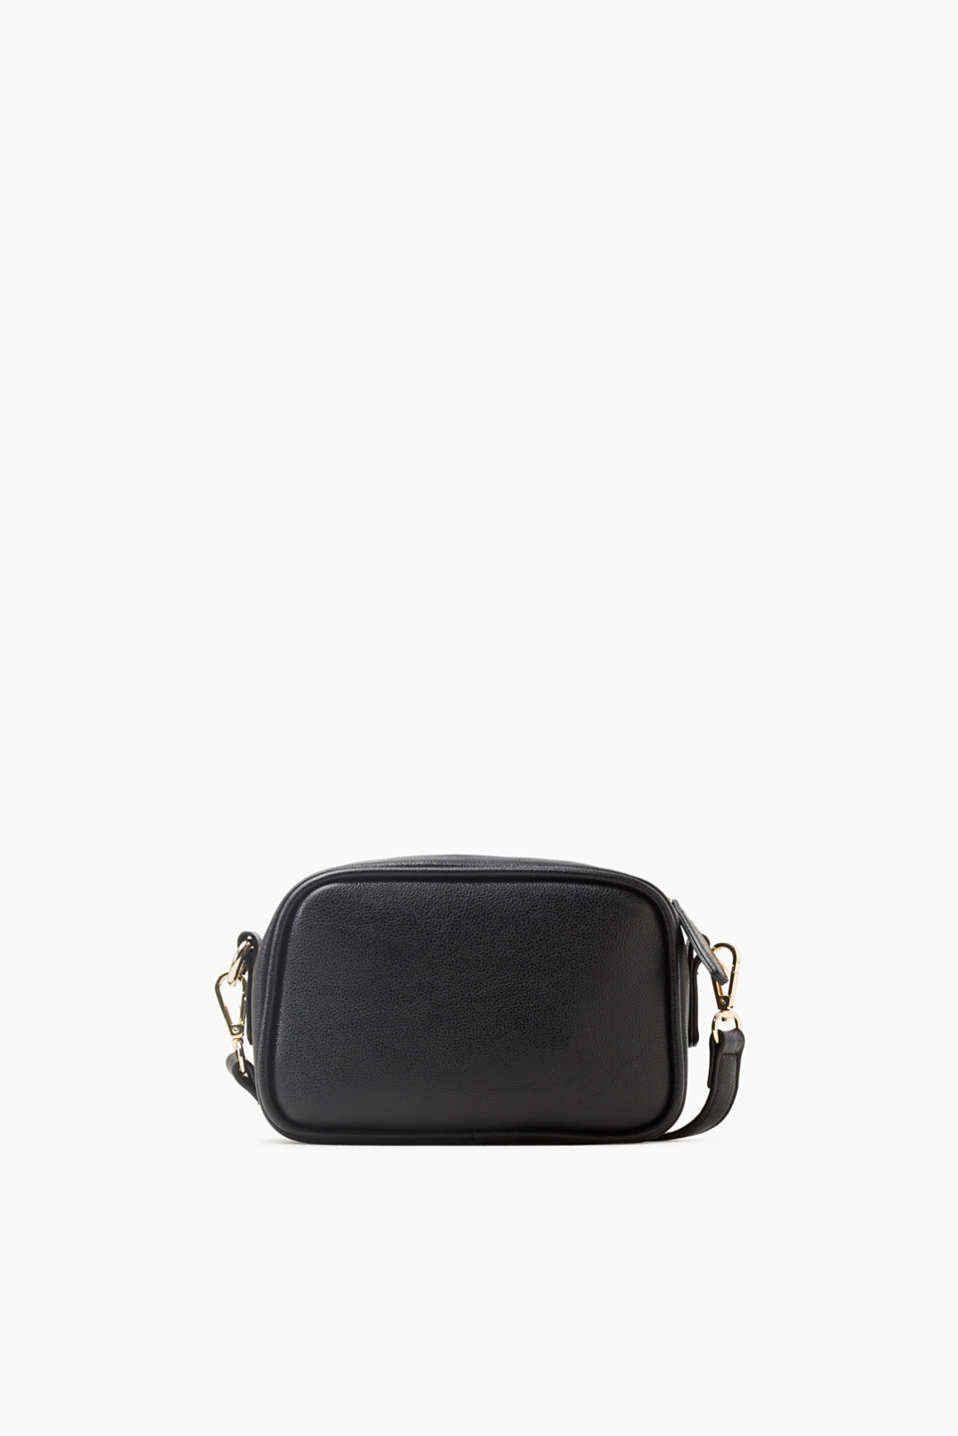 Your daily essential! Small shoulder bag with a length-adjustable shoulder strap, made of smooth faux leather